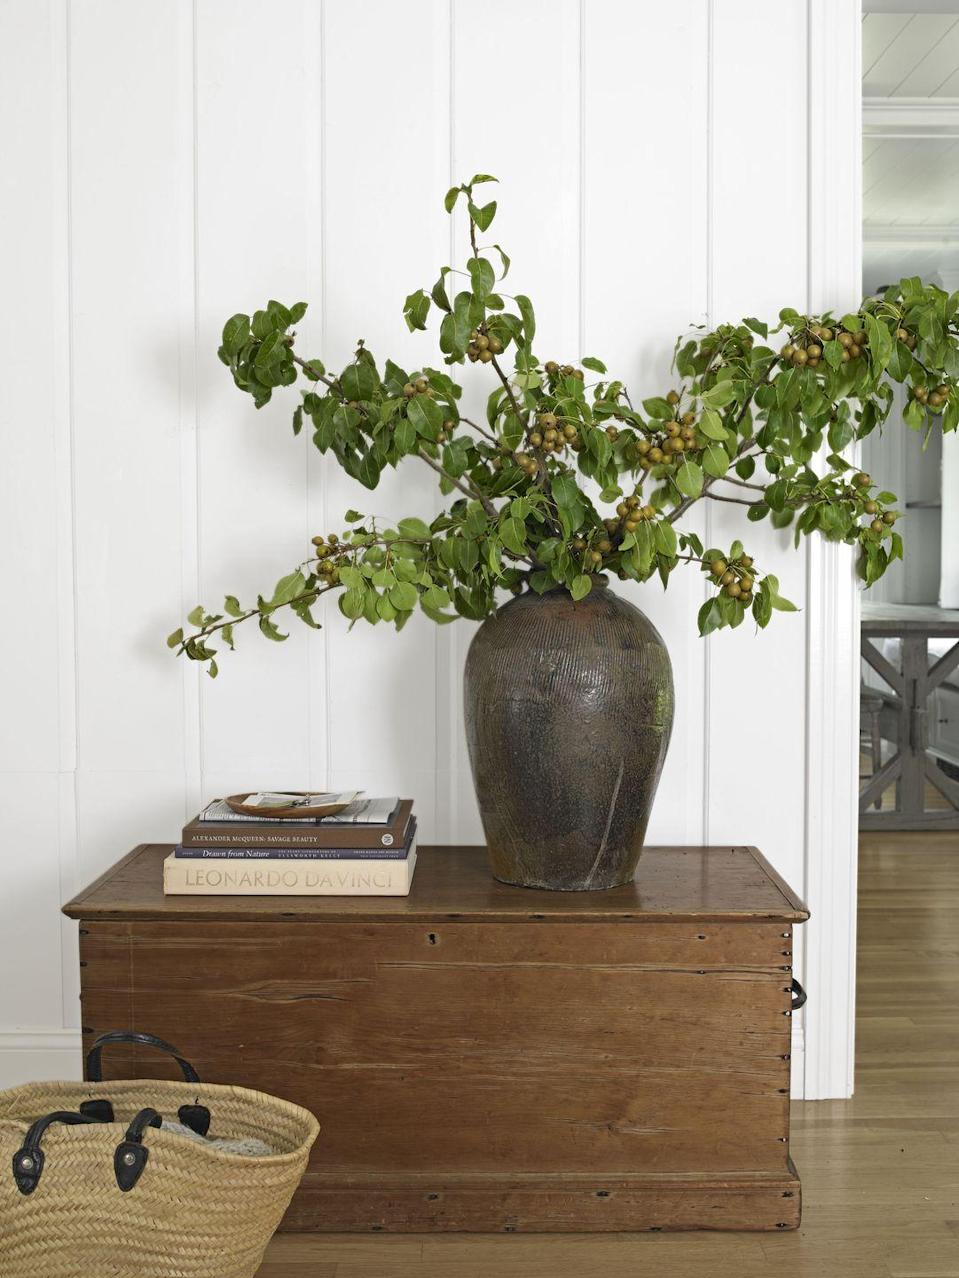 """<p>""""Cut or buy these beautiful branches long,"""" Liza Lubell of Brooklyn's Peartree Flowers says, then balance their heft with an equally sizable container. Start by placing your tallest cuttings in the middle, and fan out with the shorter ones from there. An ideal home for such a striking setup: a low piece of furniture, like a chest or bench. You can also try olives or forsythia.</p><p><a class=""""link rapid-noclick-resp"""" href=""""https://www.amazon.com/Chinese-Shingo-Artificial-Lifelike-Simulation/dp/B01LFACDIA?tag=syn-yahoo-20&ascsubtag=%5Bartid%7C10050.g.1371%5Bsrc%7Cyahoo-us"""" rel=""""nofollow noopener"""" target=""""_blank"""" data-ylk=""""slk:SHOP FAUX PEARS"""">SHOP FAUX PEARS</a></p>"""